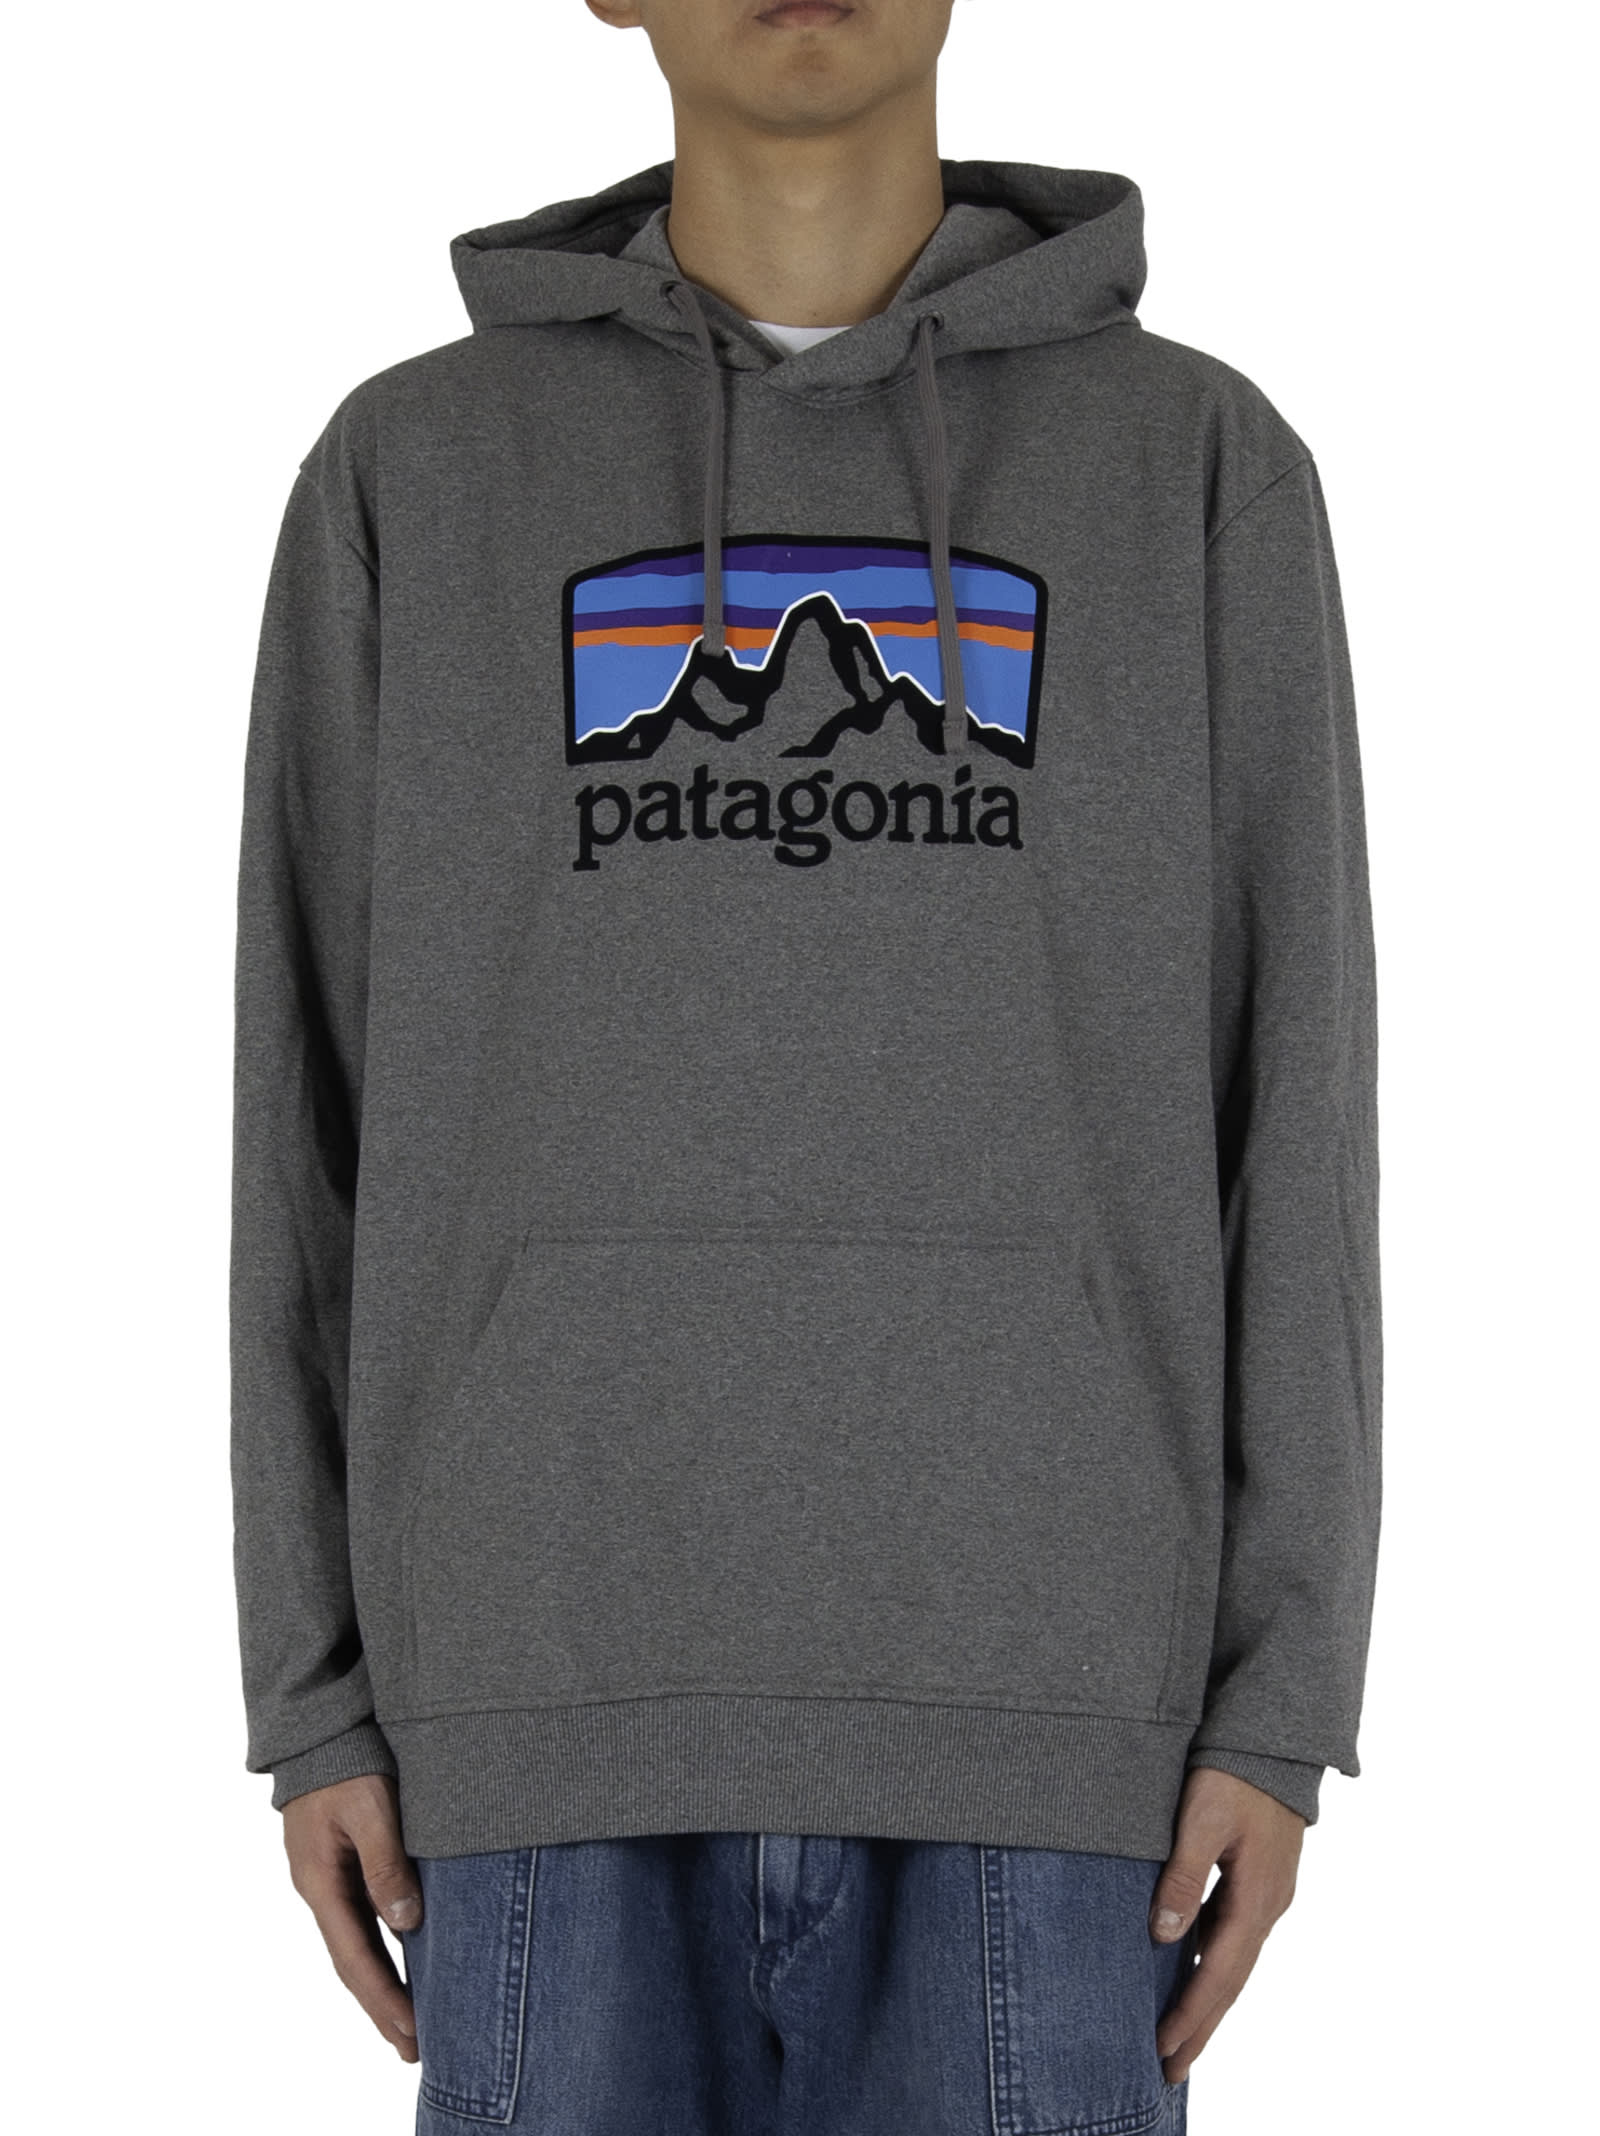 Logo print on chest; - Adjustable drawstring hood; - Kangaroo pocket; - Elastic ribbed hem and cuffs. - Composition: 47,5% recycled cotton, 47,5% Recycled polyester, 5% Elastan - Color: Grey